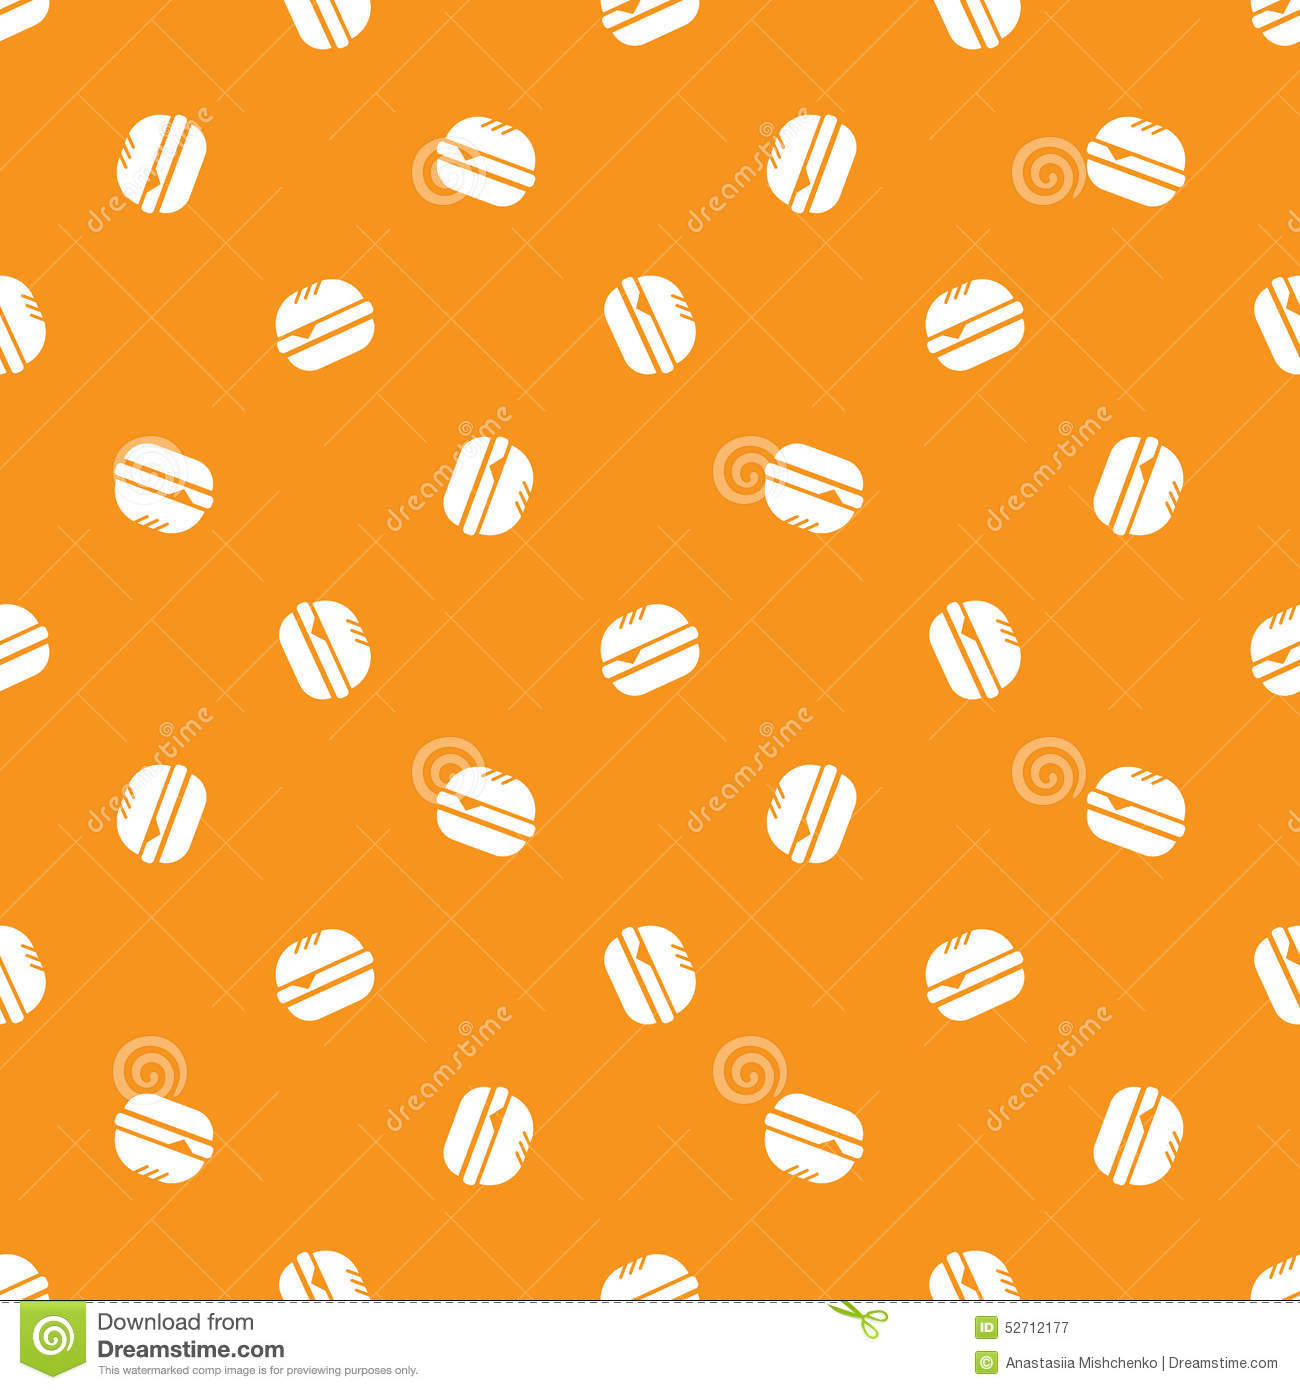 Eat icon png